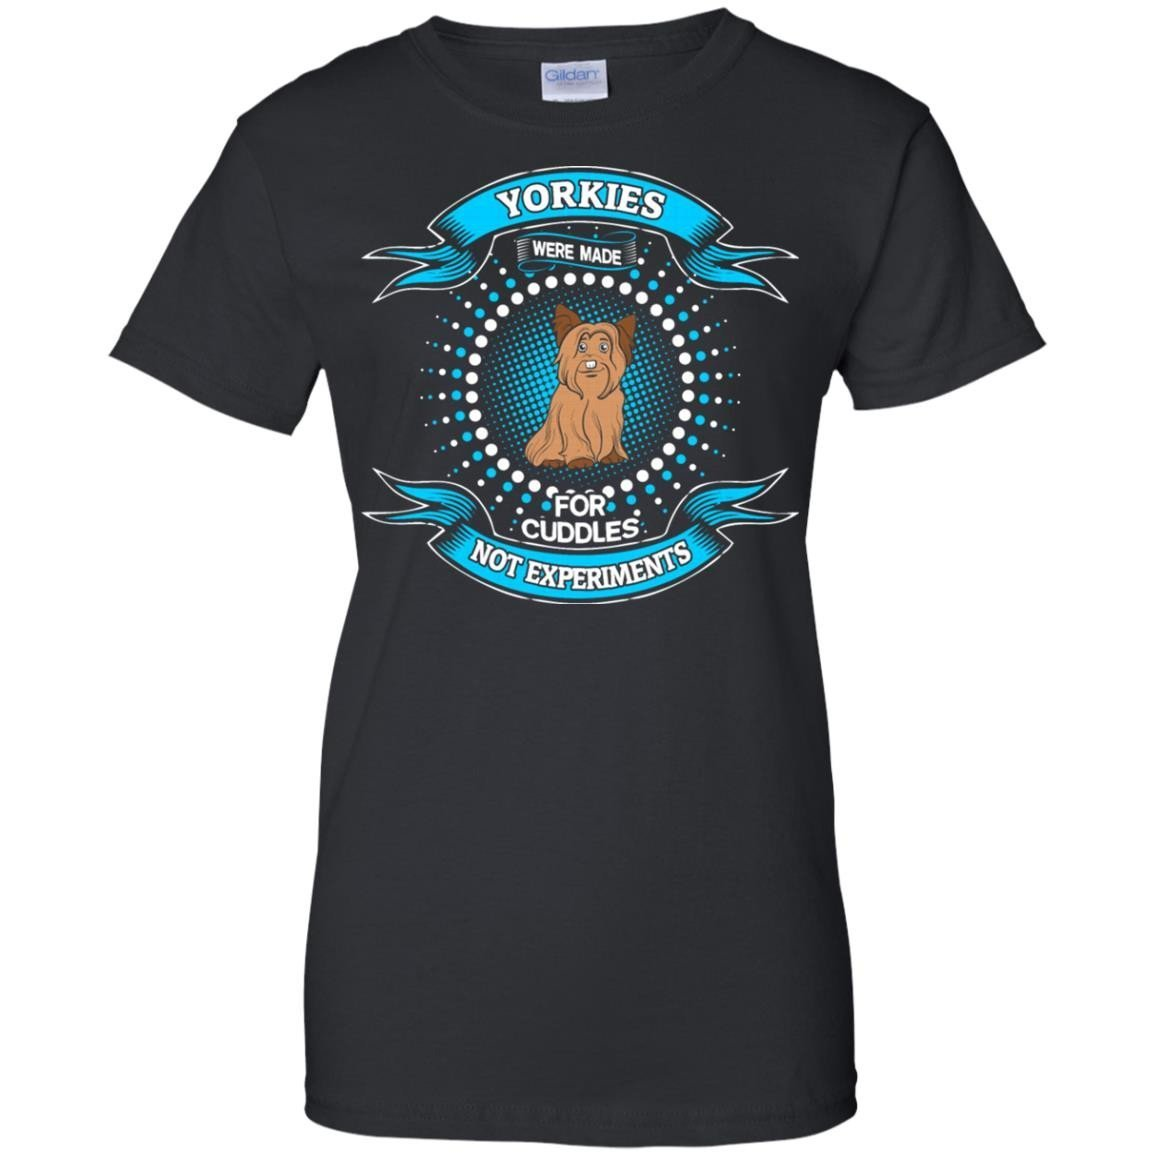 Yorkie Dogs For Cuddles Not Experiments T-Shirt Women